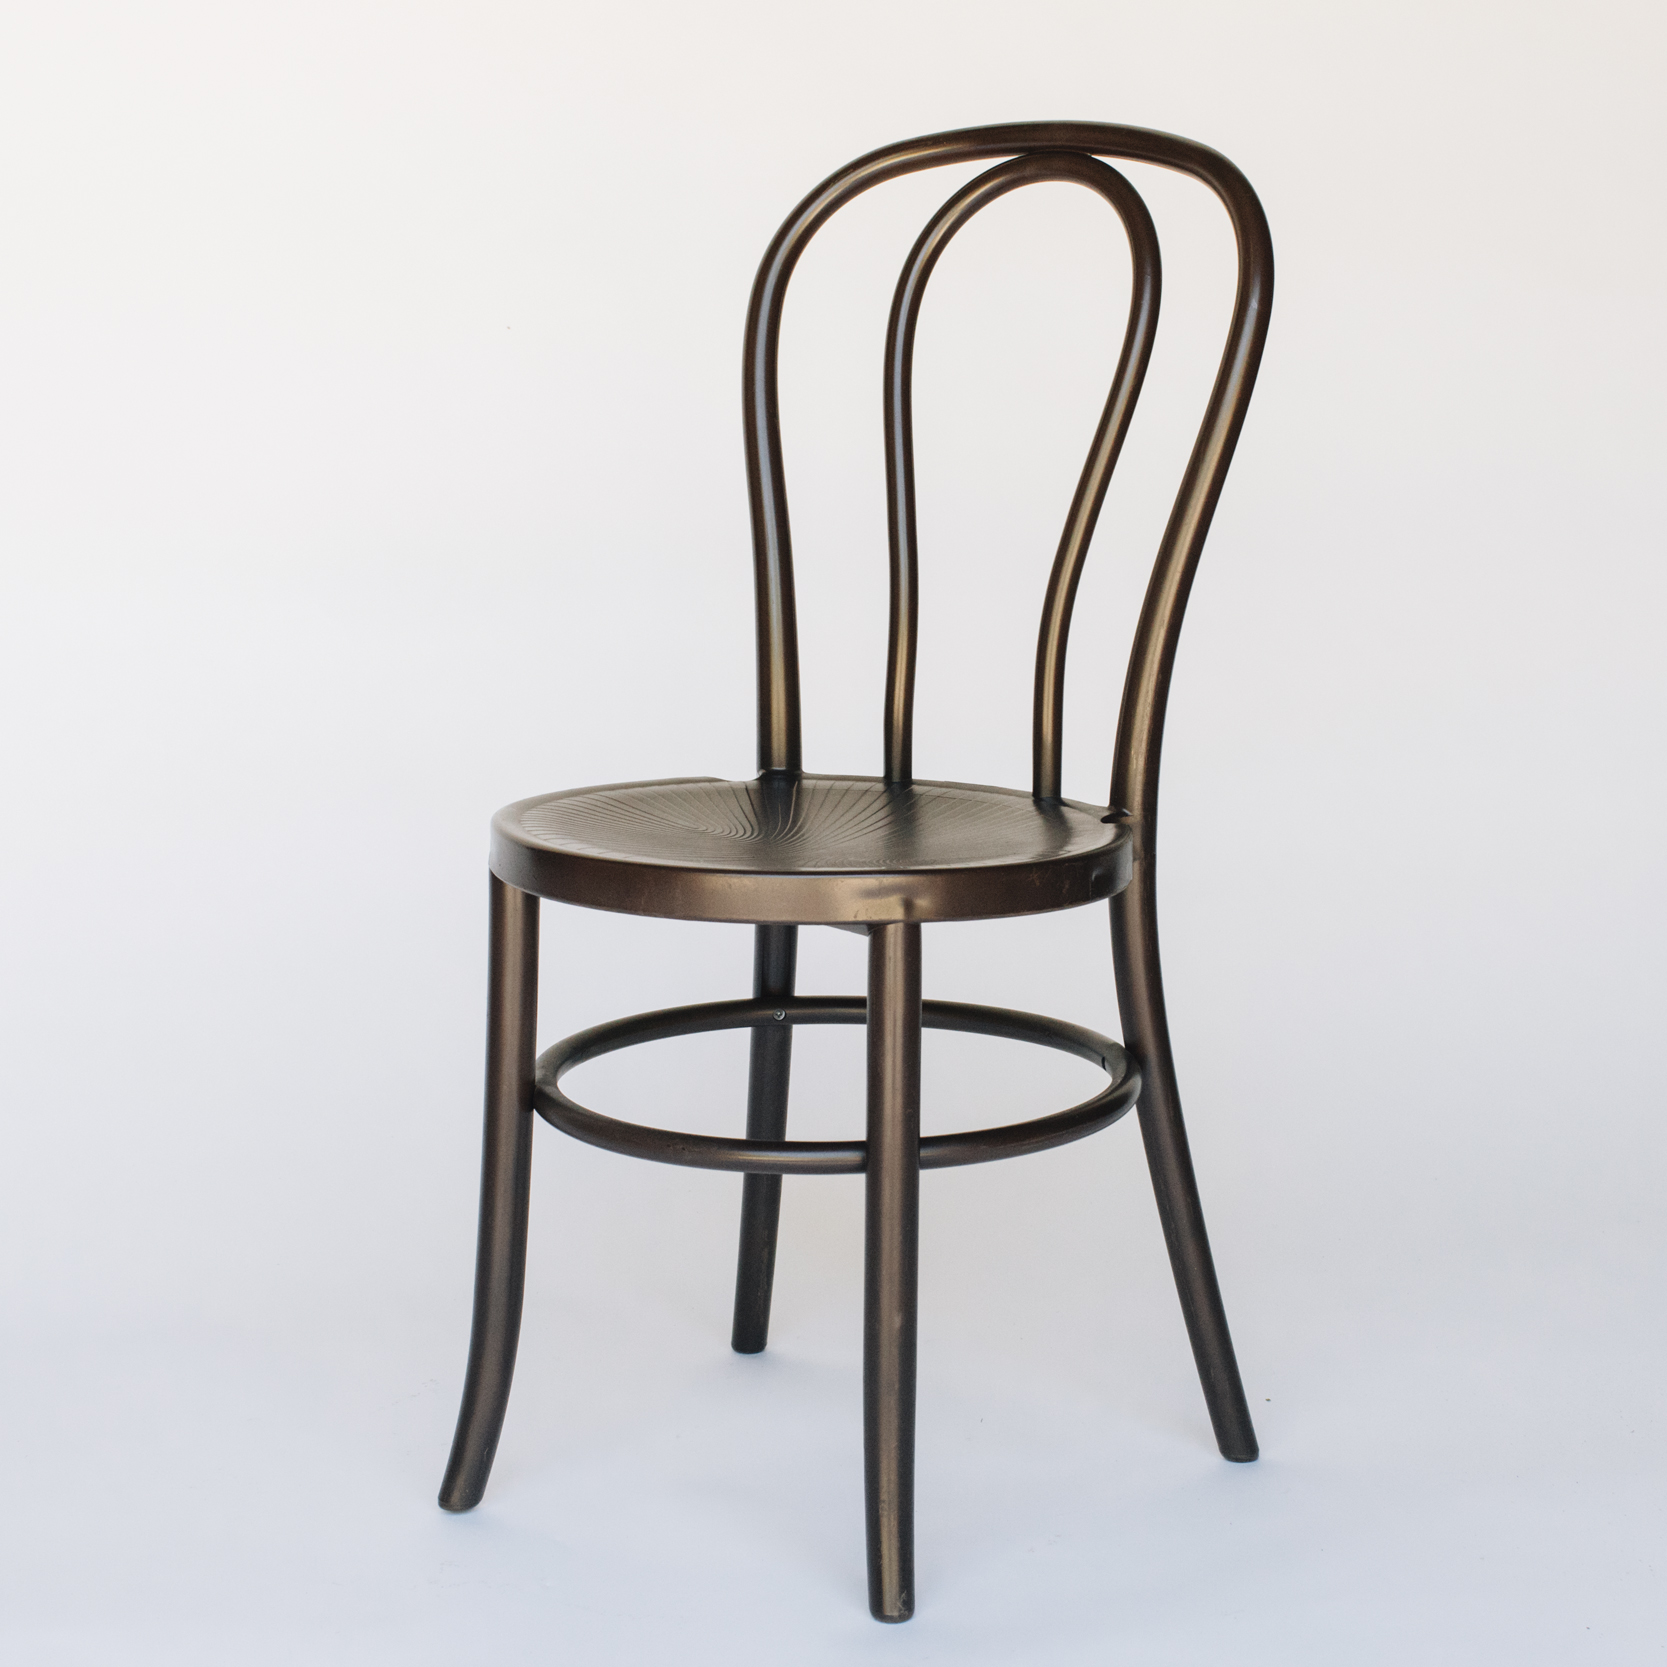 CHAIR_METAL_3.jpg